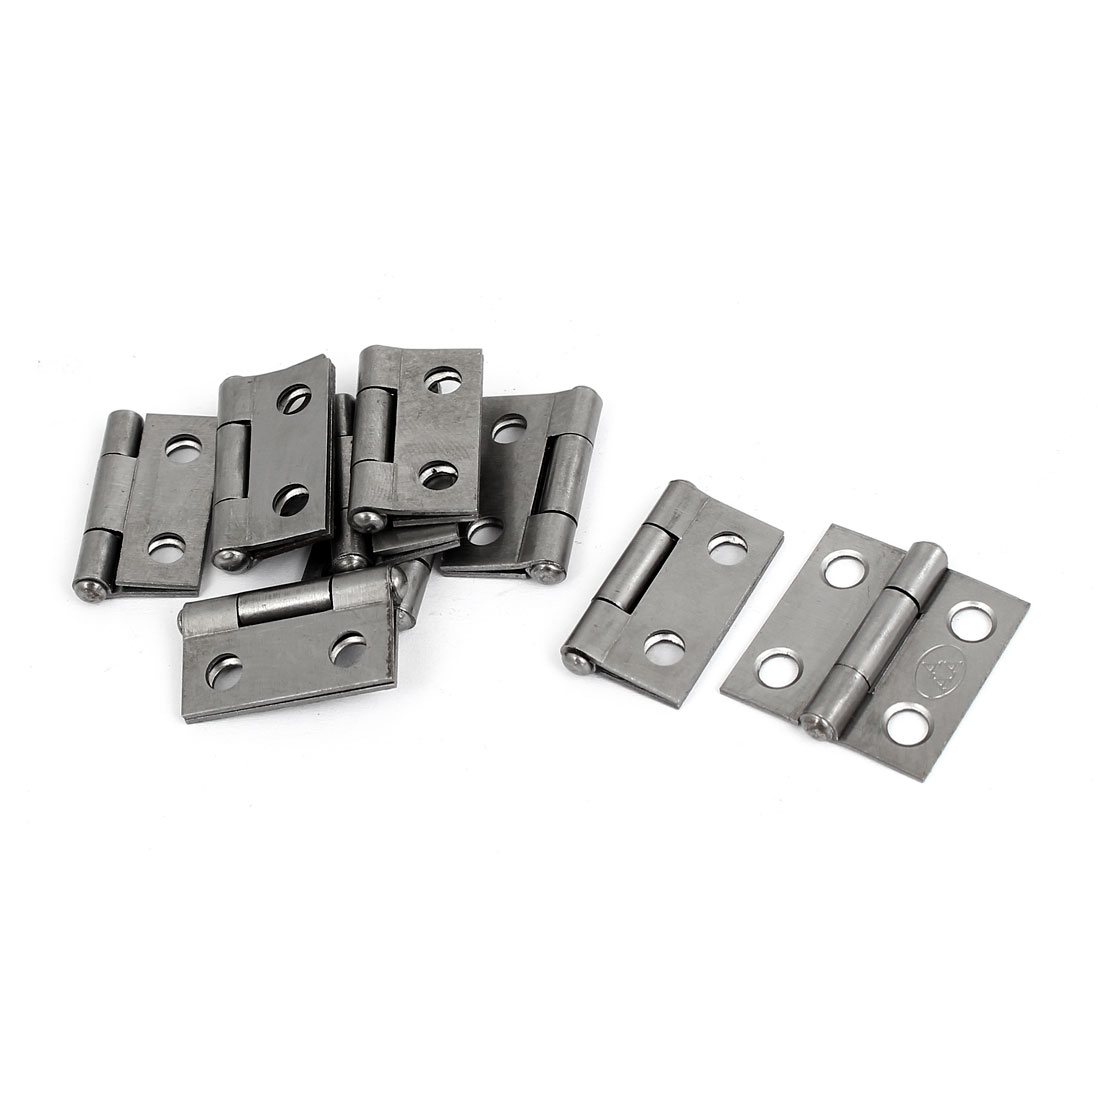 "Cupboard Cabinet Furniture Hardware Folding Door Butt Hinges Silver Gray 1"" Long 10pcs"